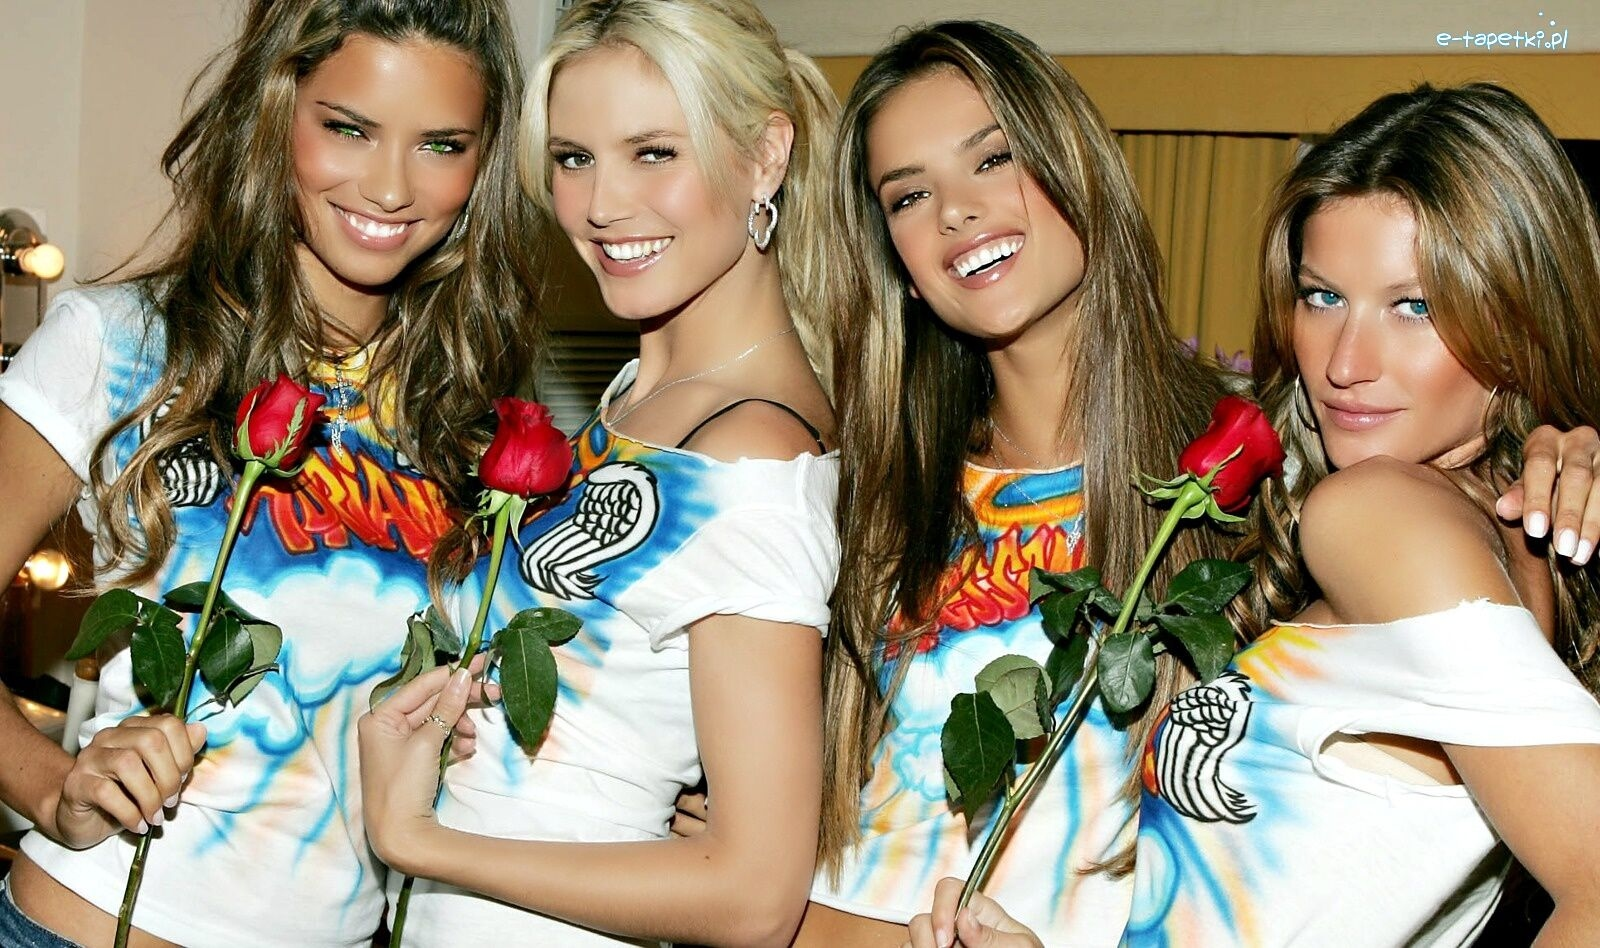 80s & 90s on Instagram: Adriana Lima, Alessandra Ambrosio and Gisele Bündchen in the 90s